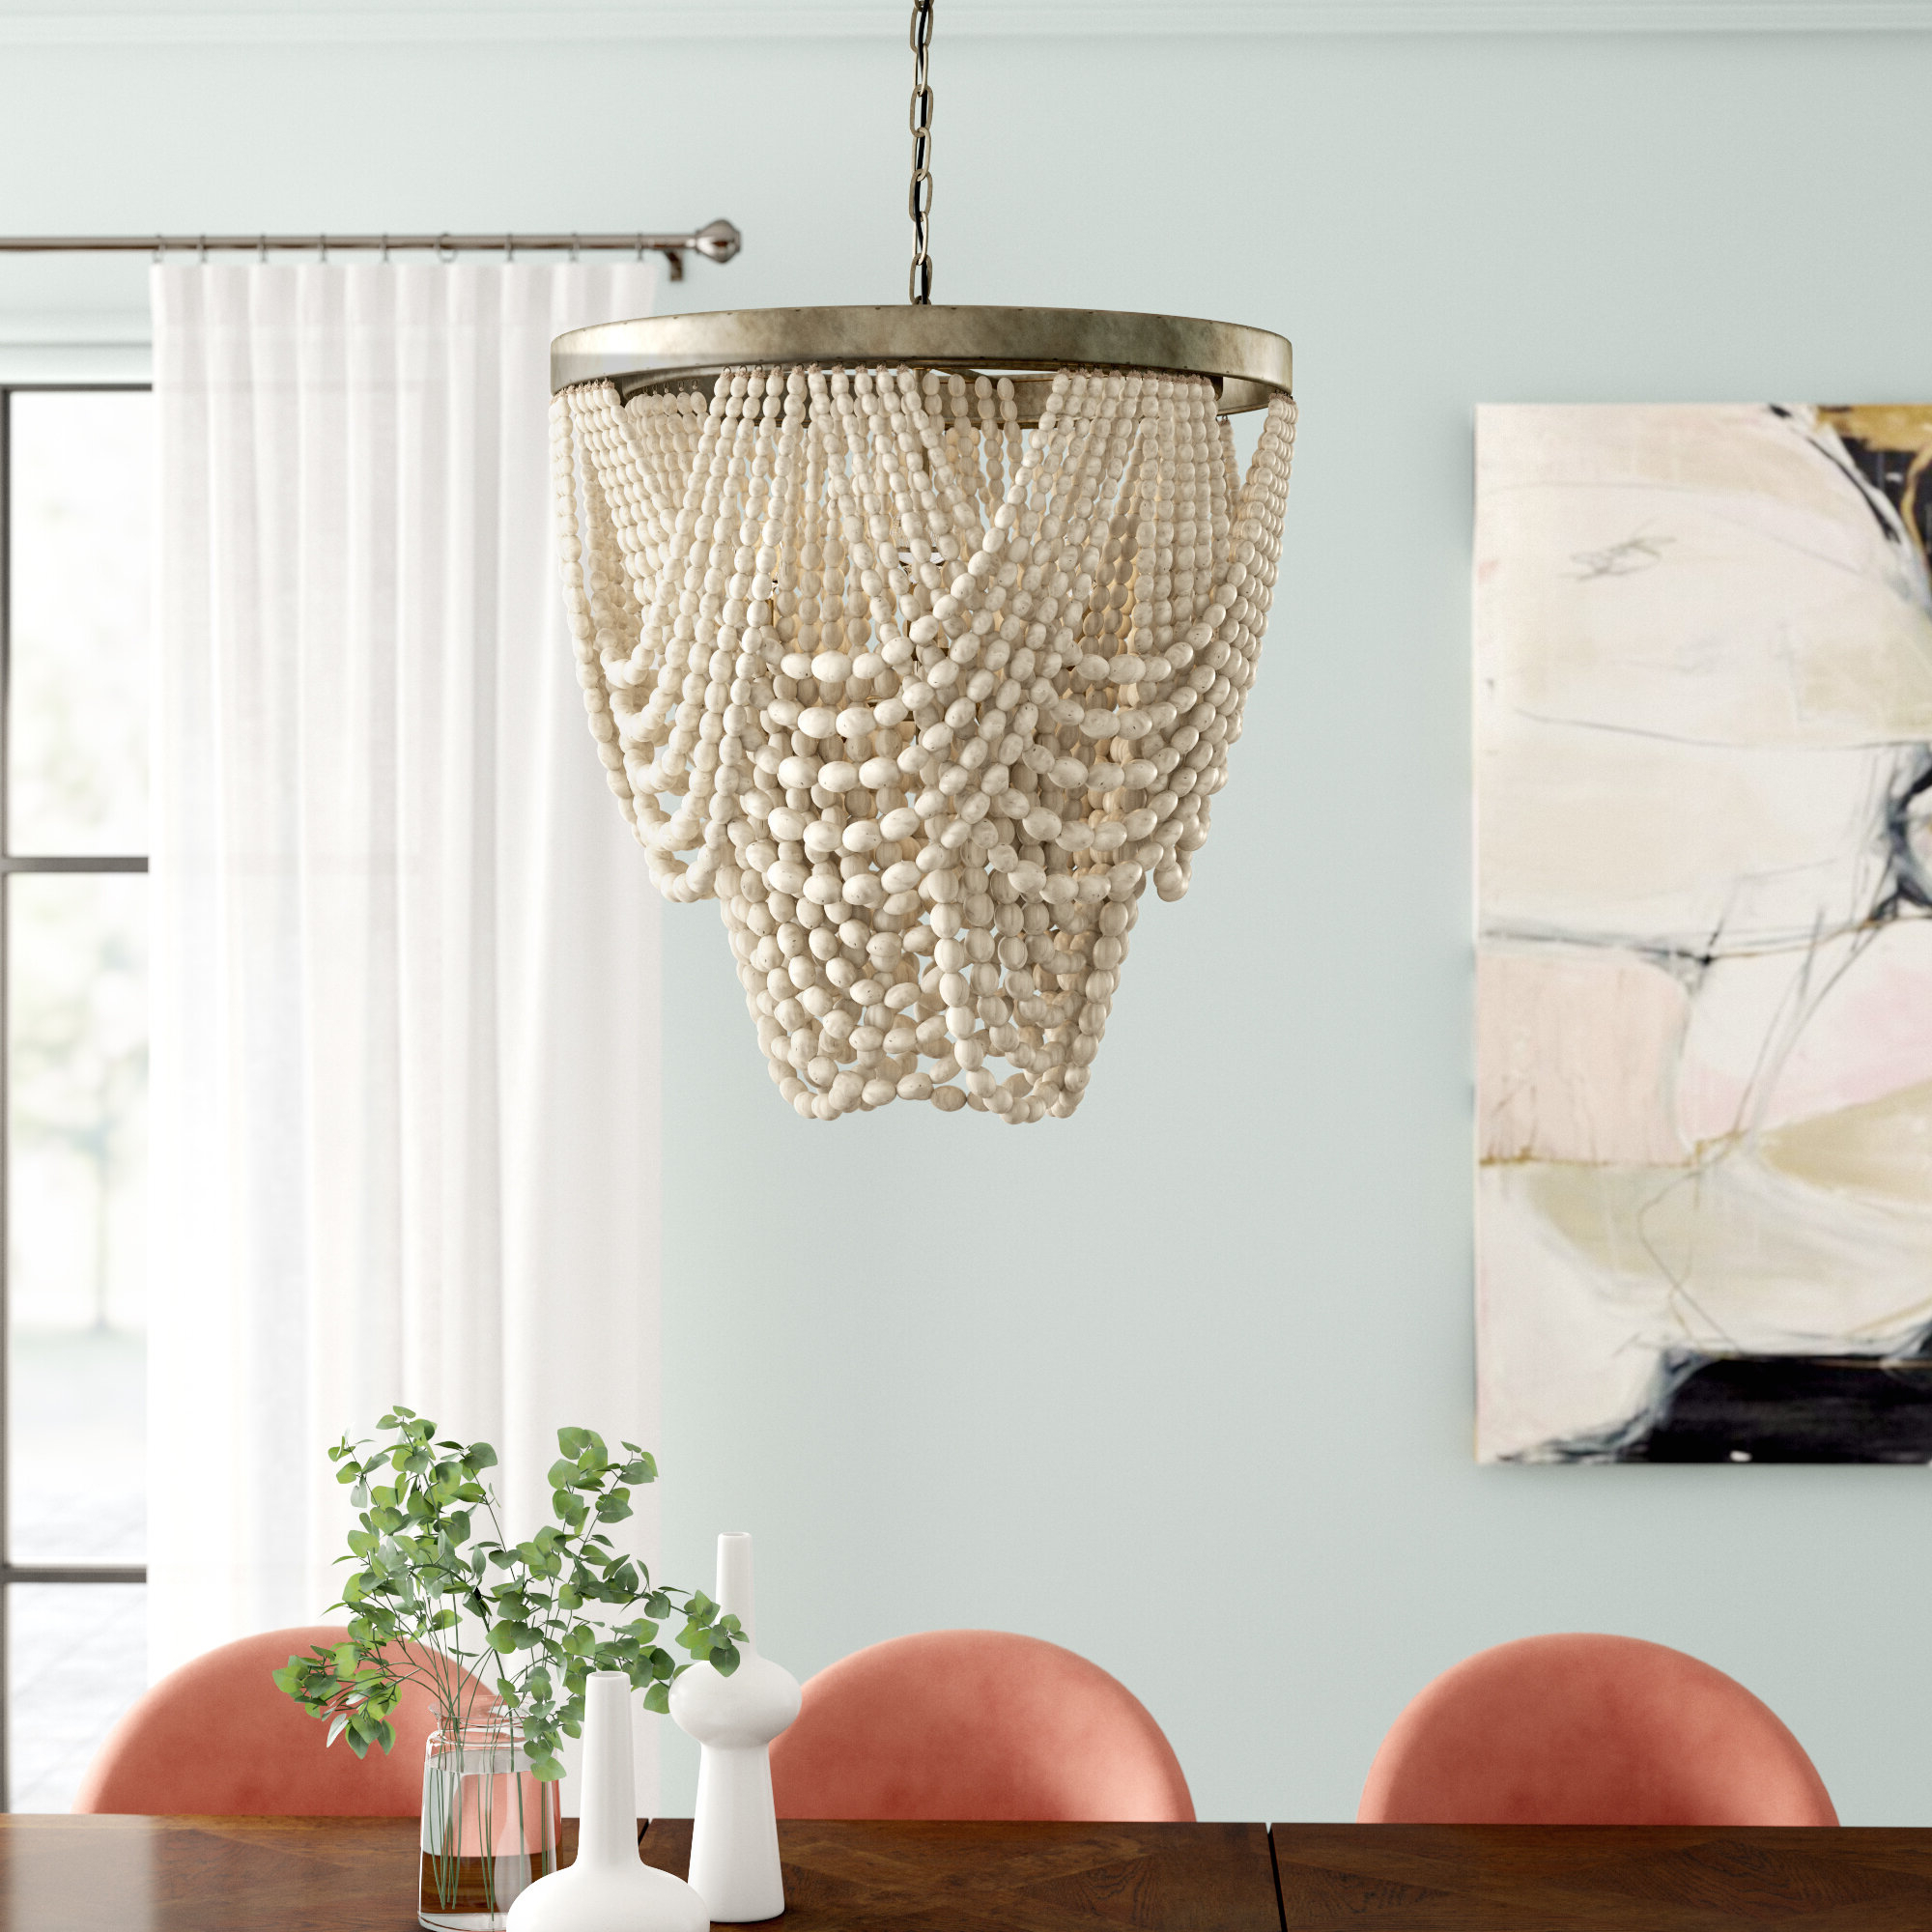 Widely Used Hatfield 3 Light Novelty Chandeliers Within Hatfield 3 Light Novelty Chandelier (View 4 of 25)